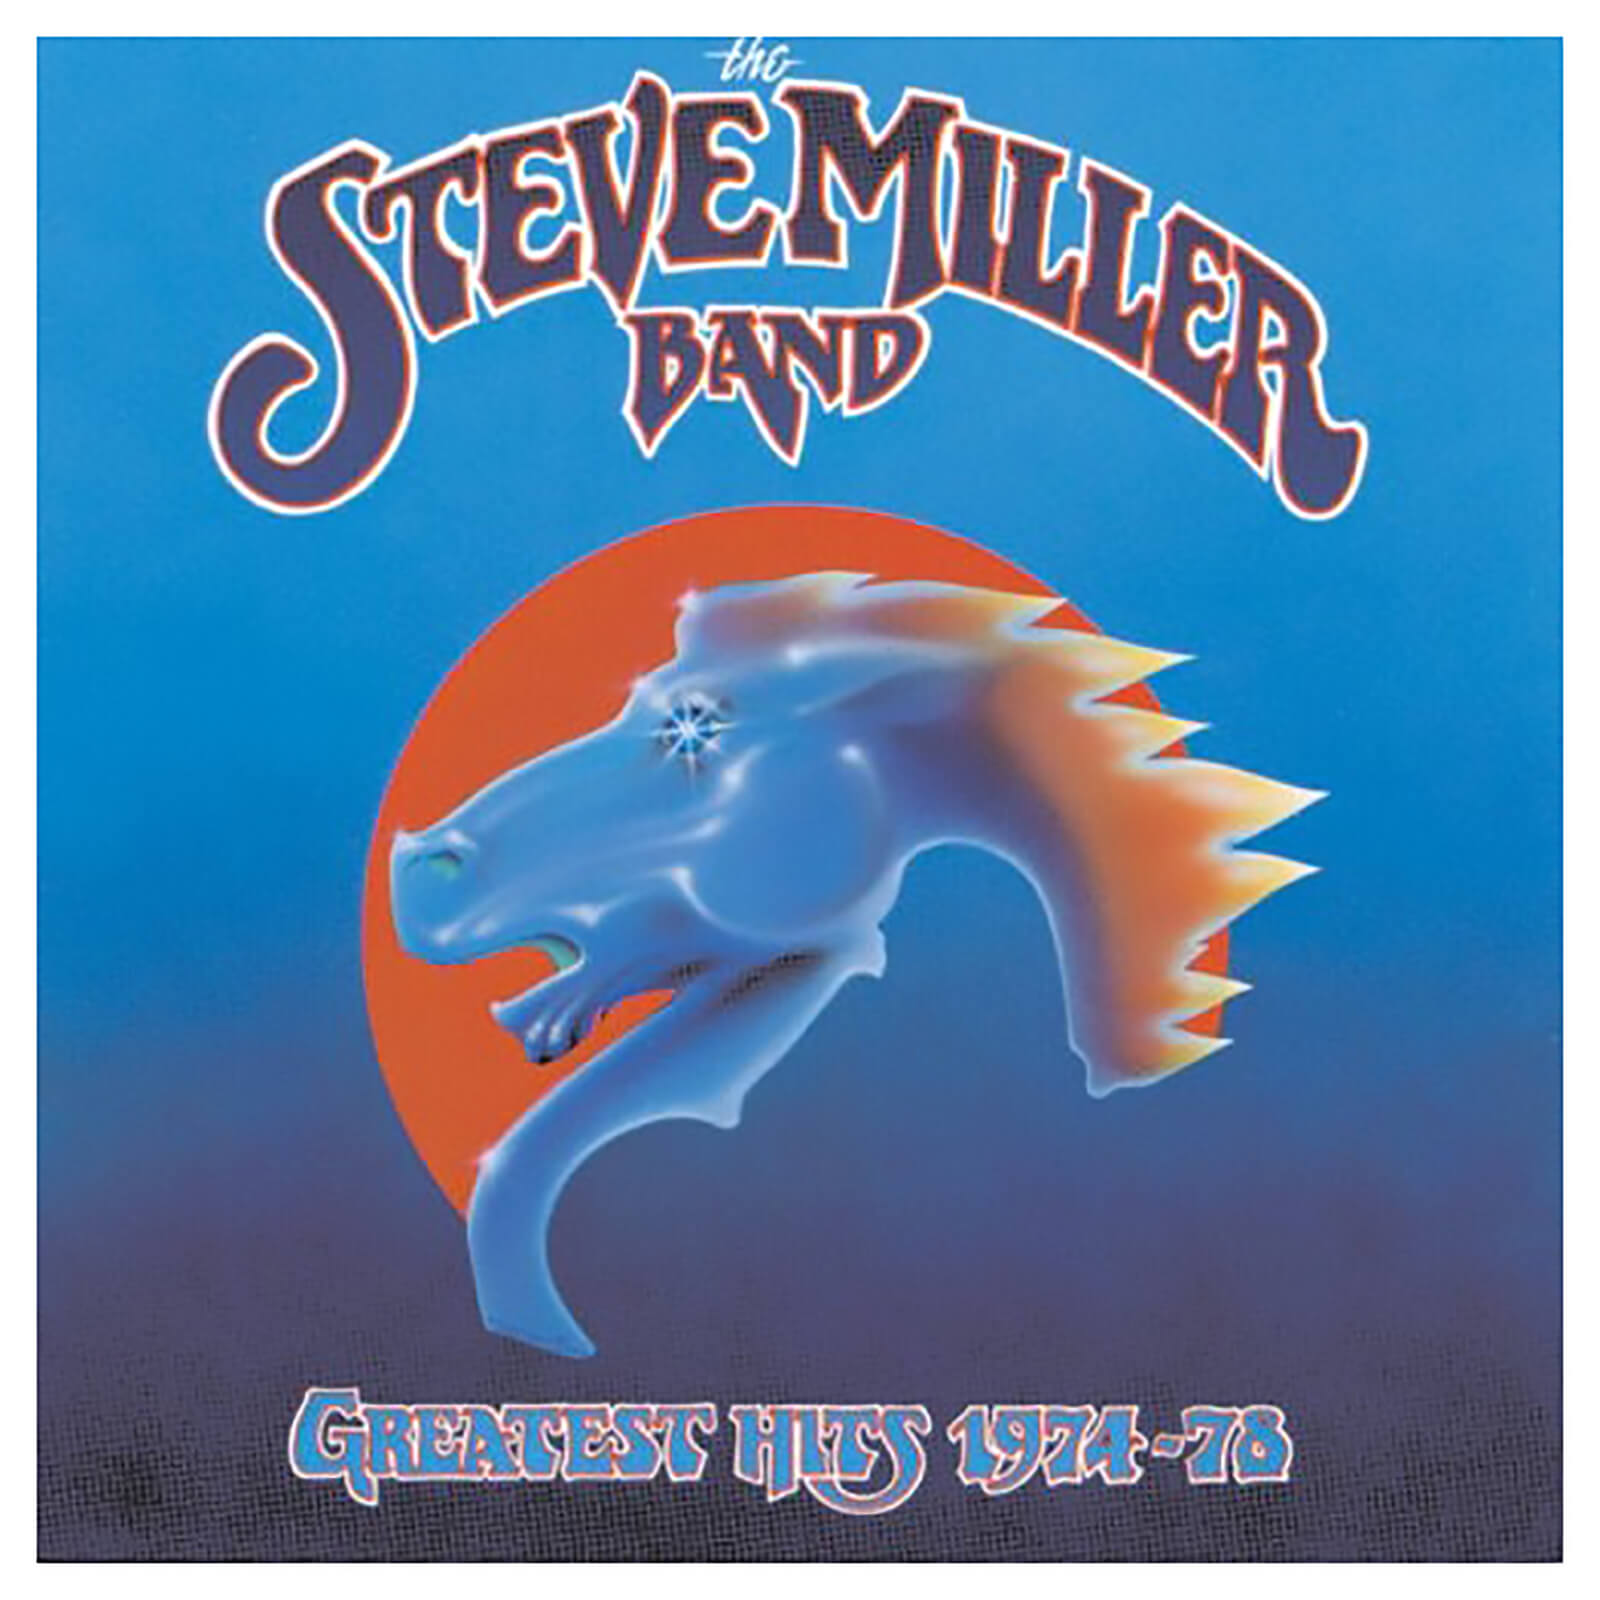 Steve Miller - Greatest Hits 1974-78 - Vinyl